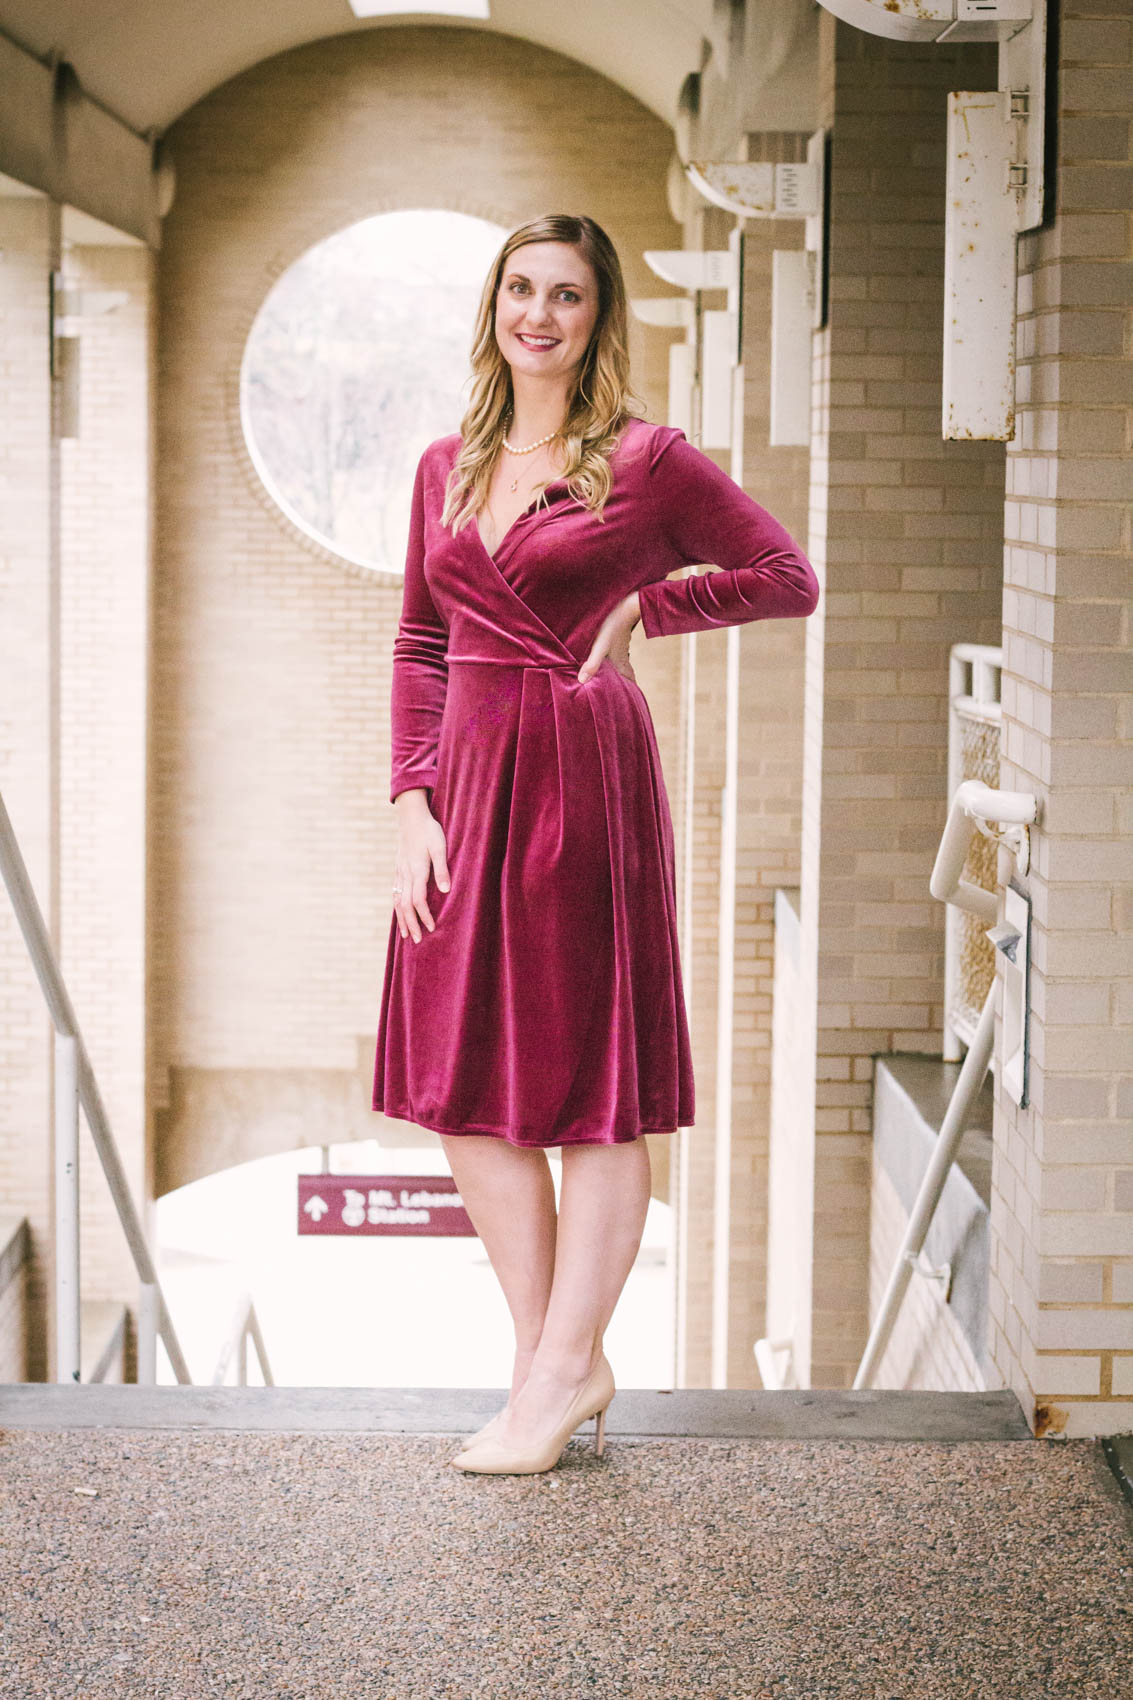 From street style to holiday parties, luxe velvet fabric has been all over lately. Perfect for looking classy or chic during the winter, you'll wear this versatile $28 velvet dress for all occasions.